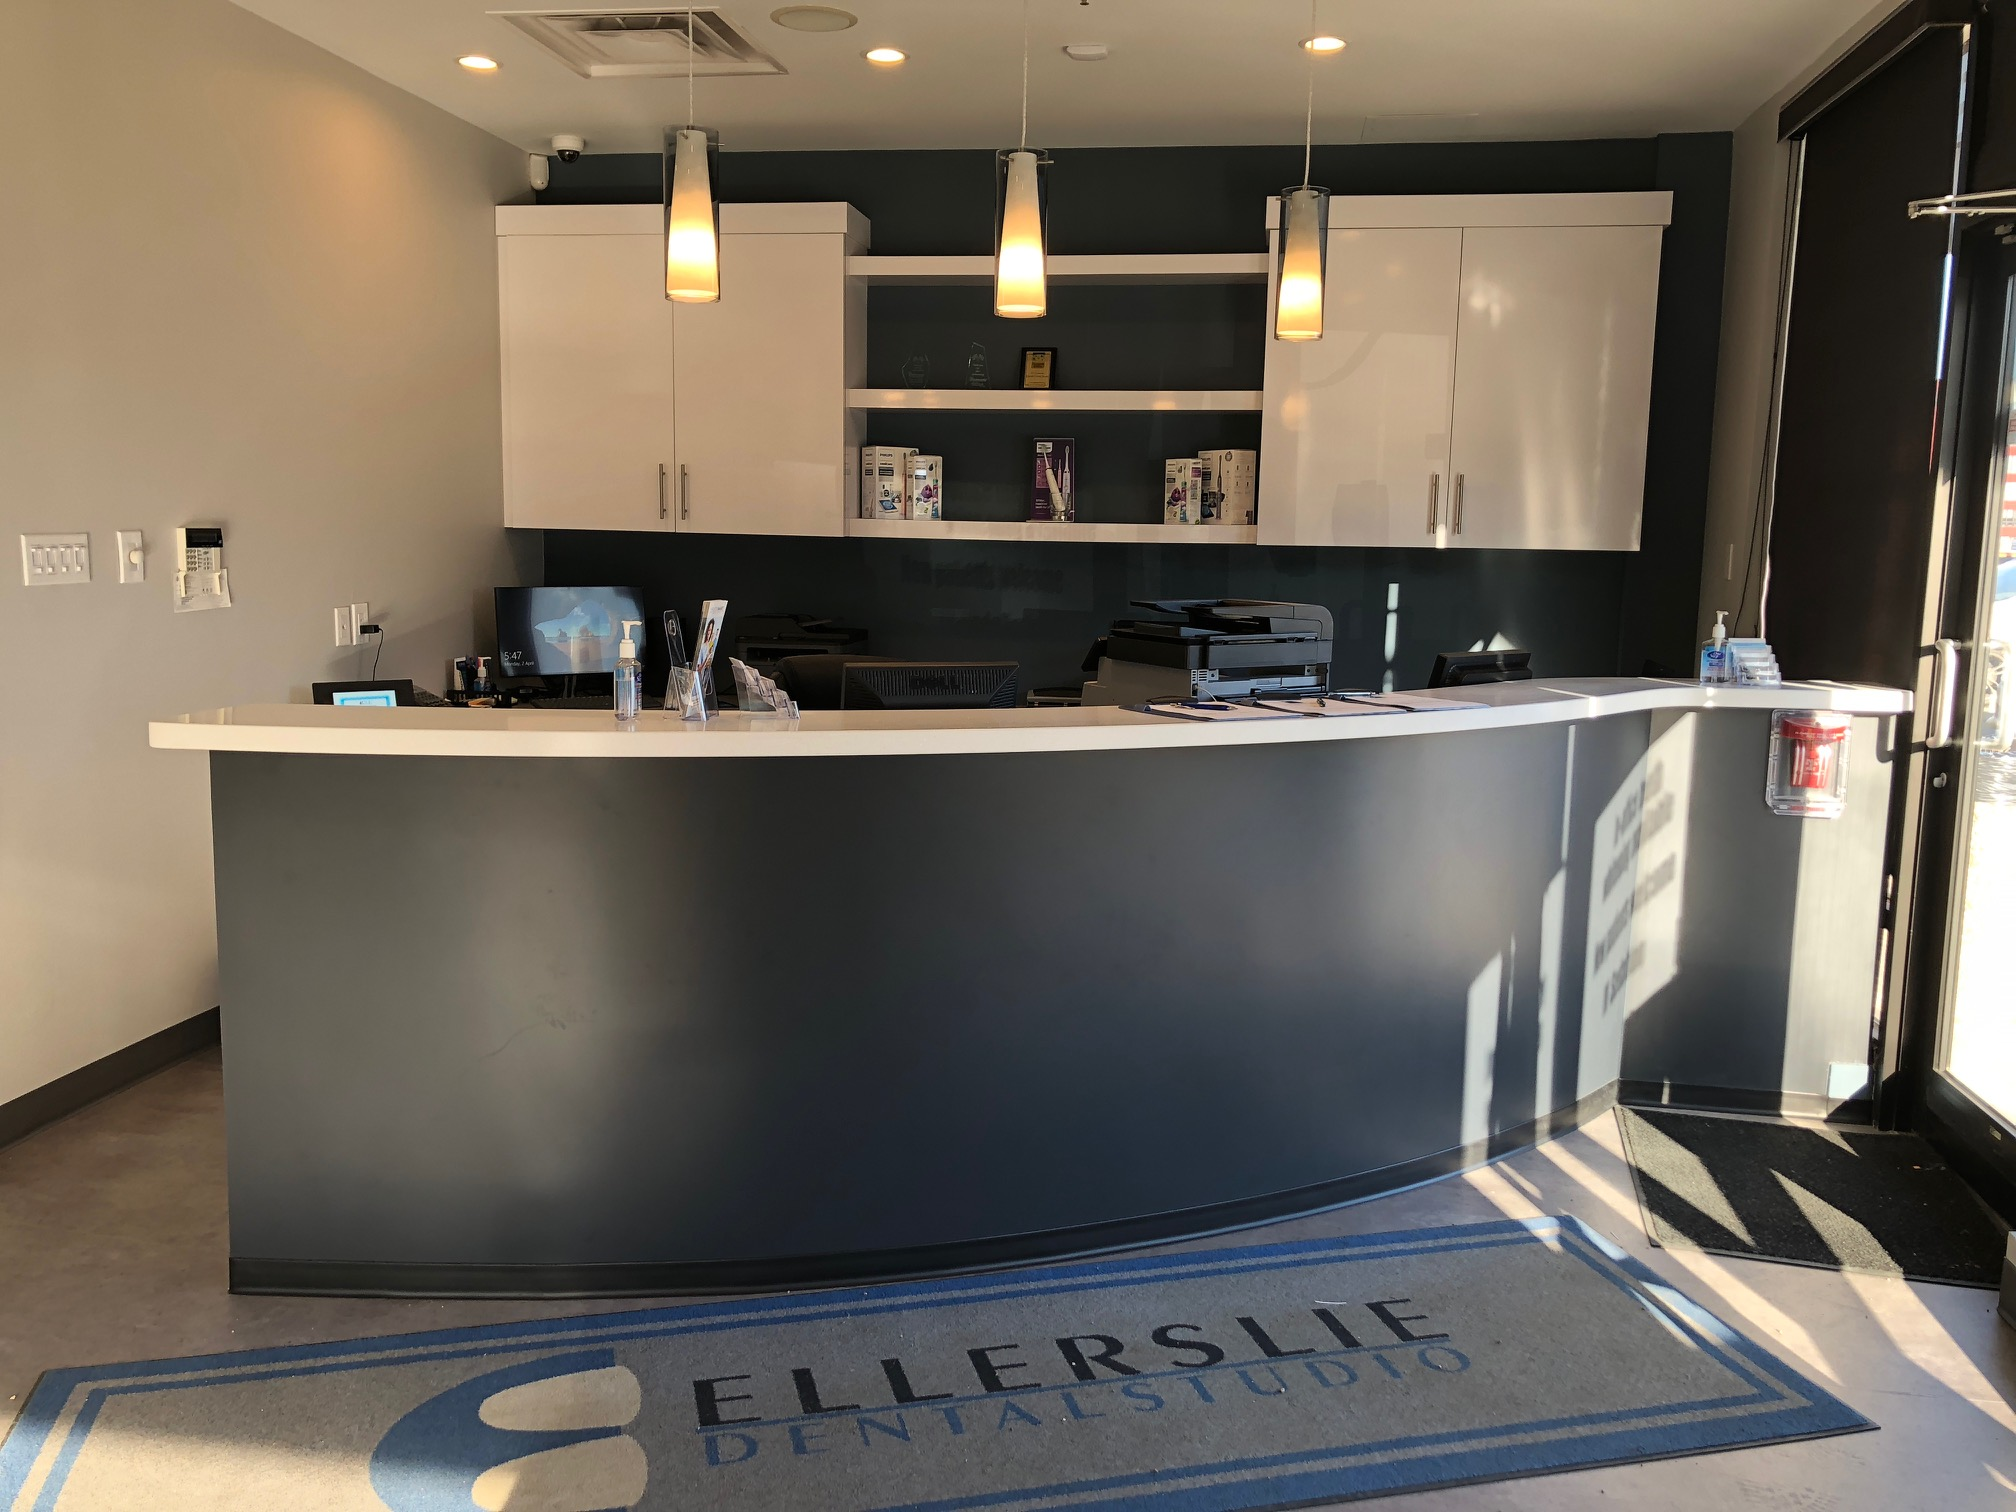 South Edmonton Dentist - Ellerslie Dental Studio